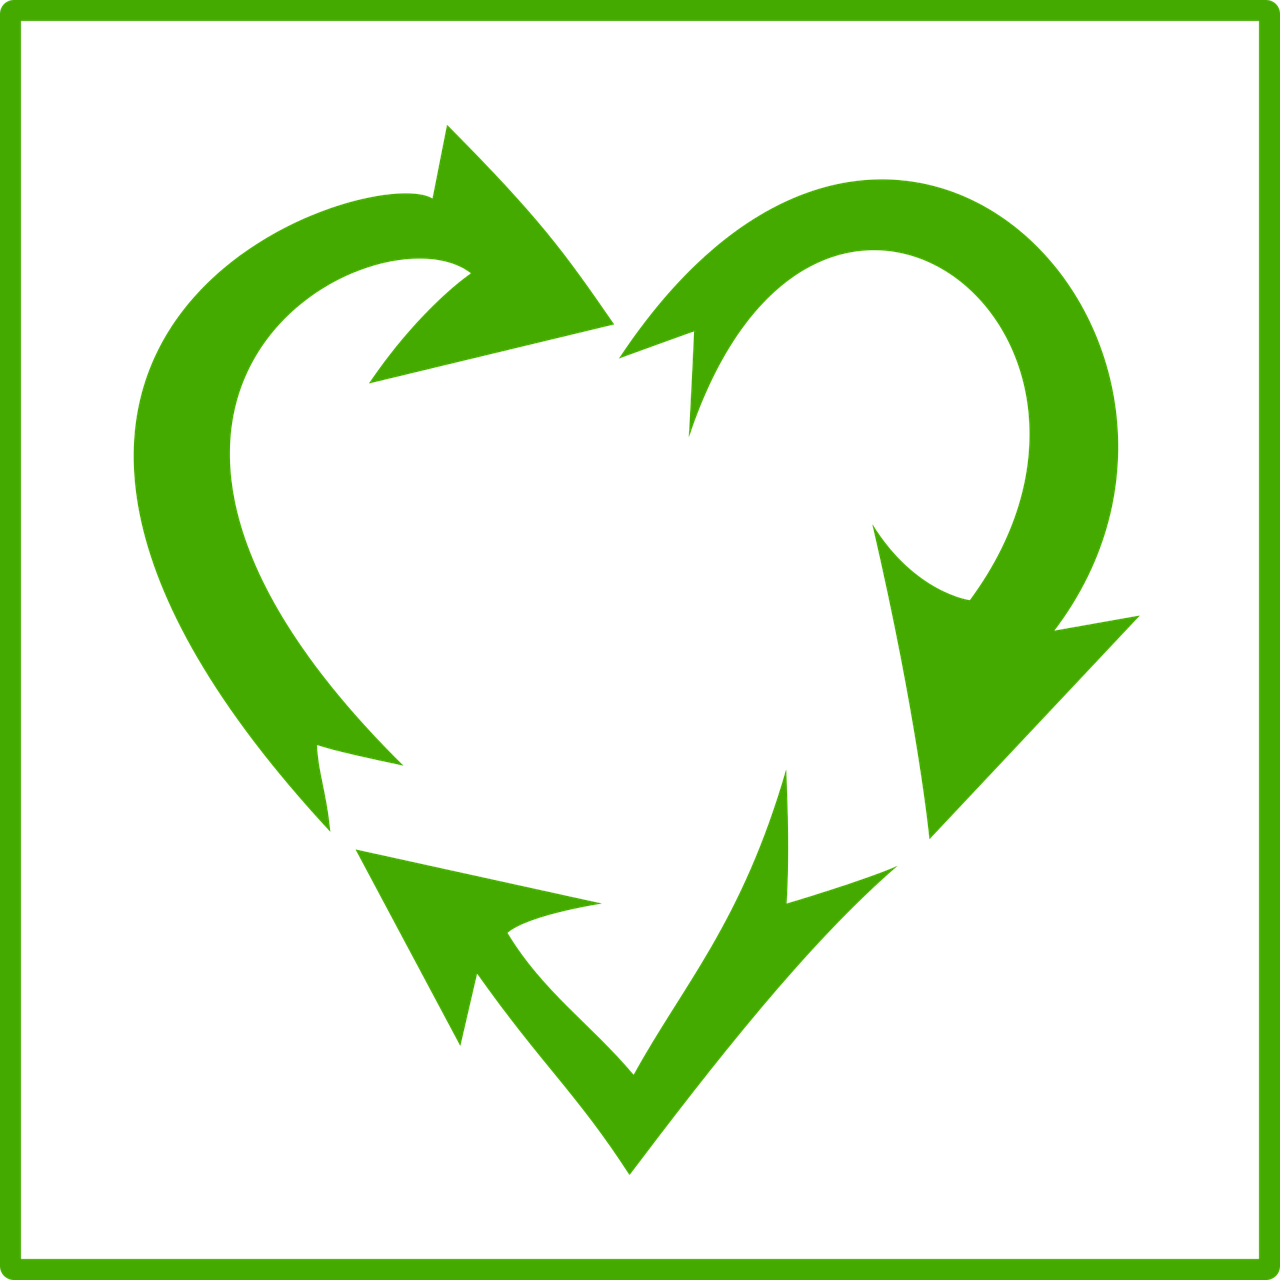 Environment clipart environment poster. Free image on pixabay